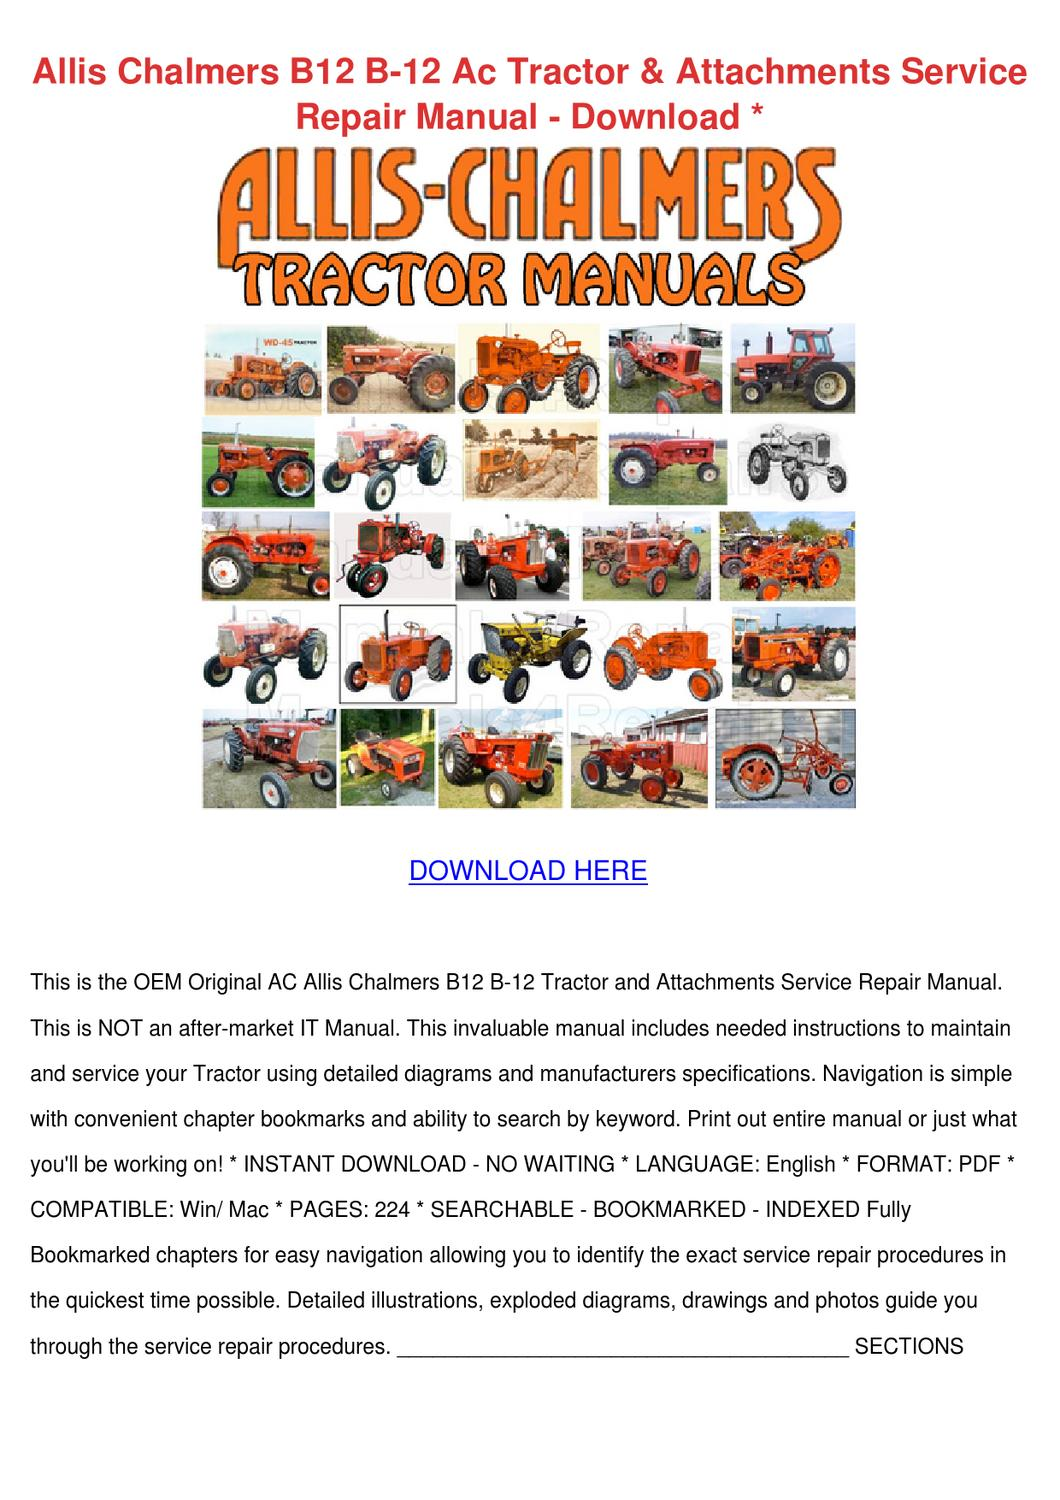 hight resolution of  12v relay wiring diagram allis chalmers b12 b 12 ac tractor attachment by johnette pamphile issuu